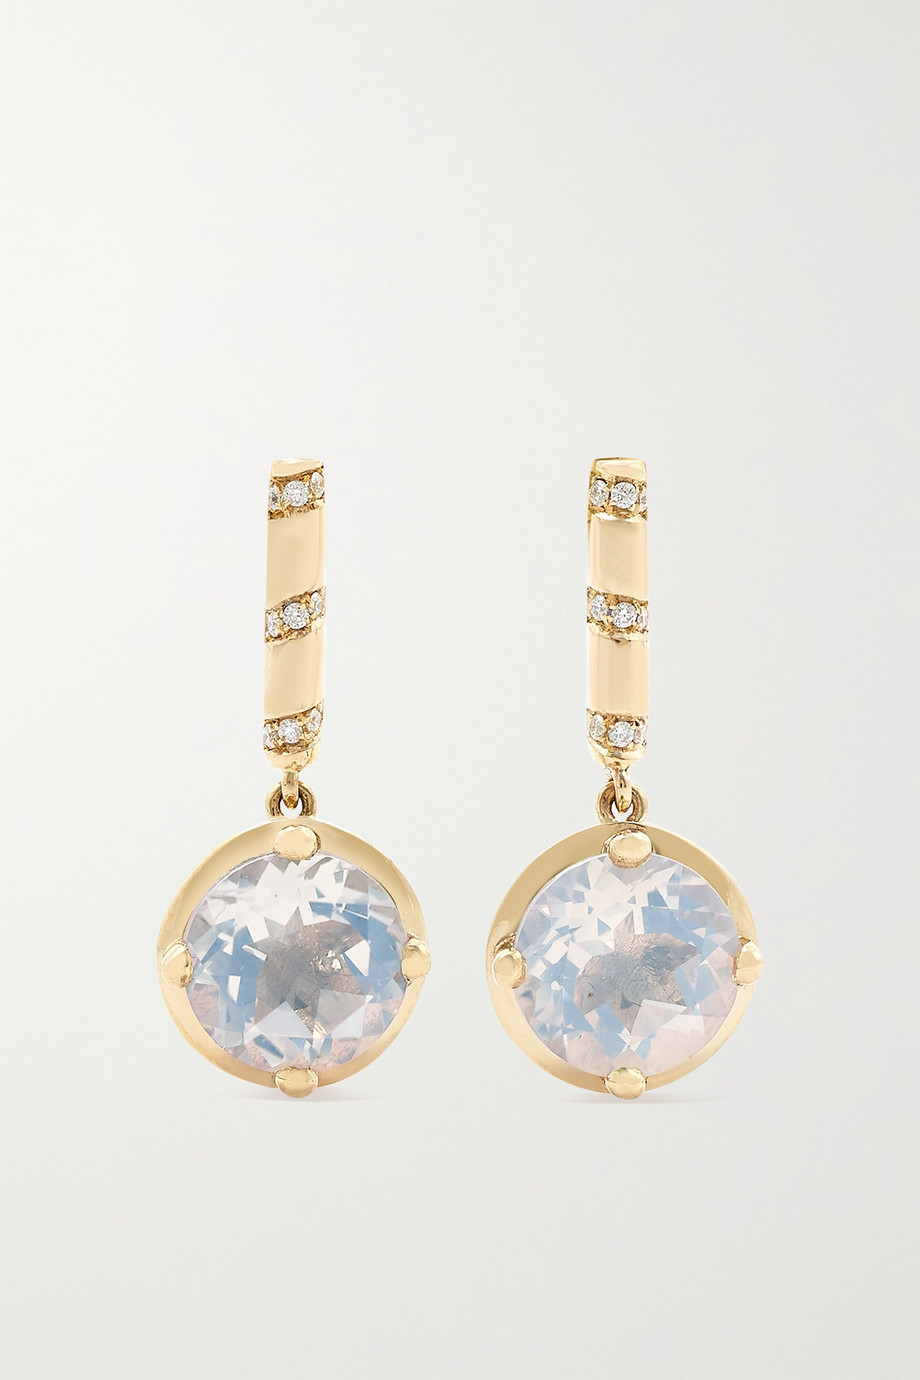 ALICE CICOLINI Memphis Bubble Round Bar Drop 14-karat gold, moonstone and diamond earrings